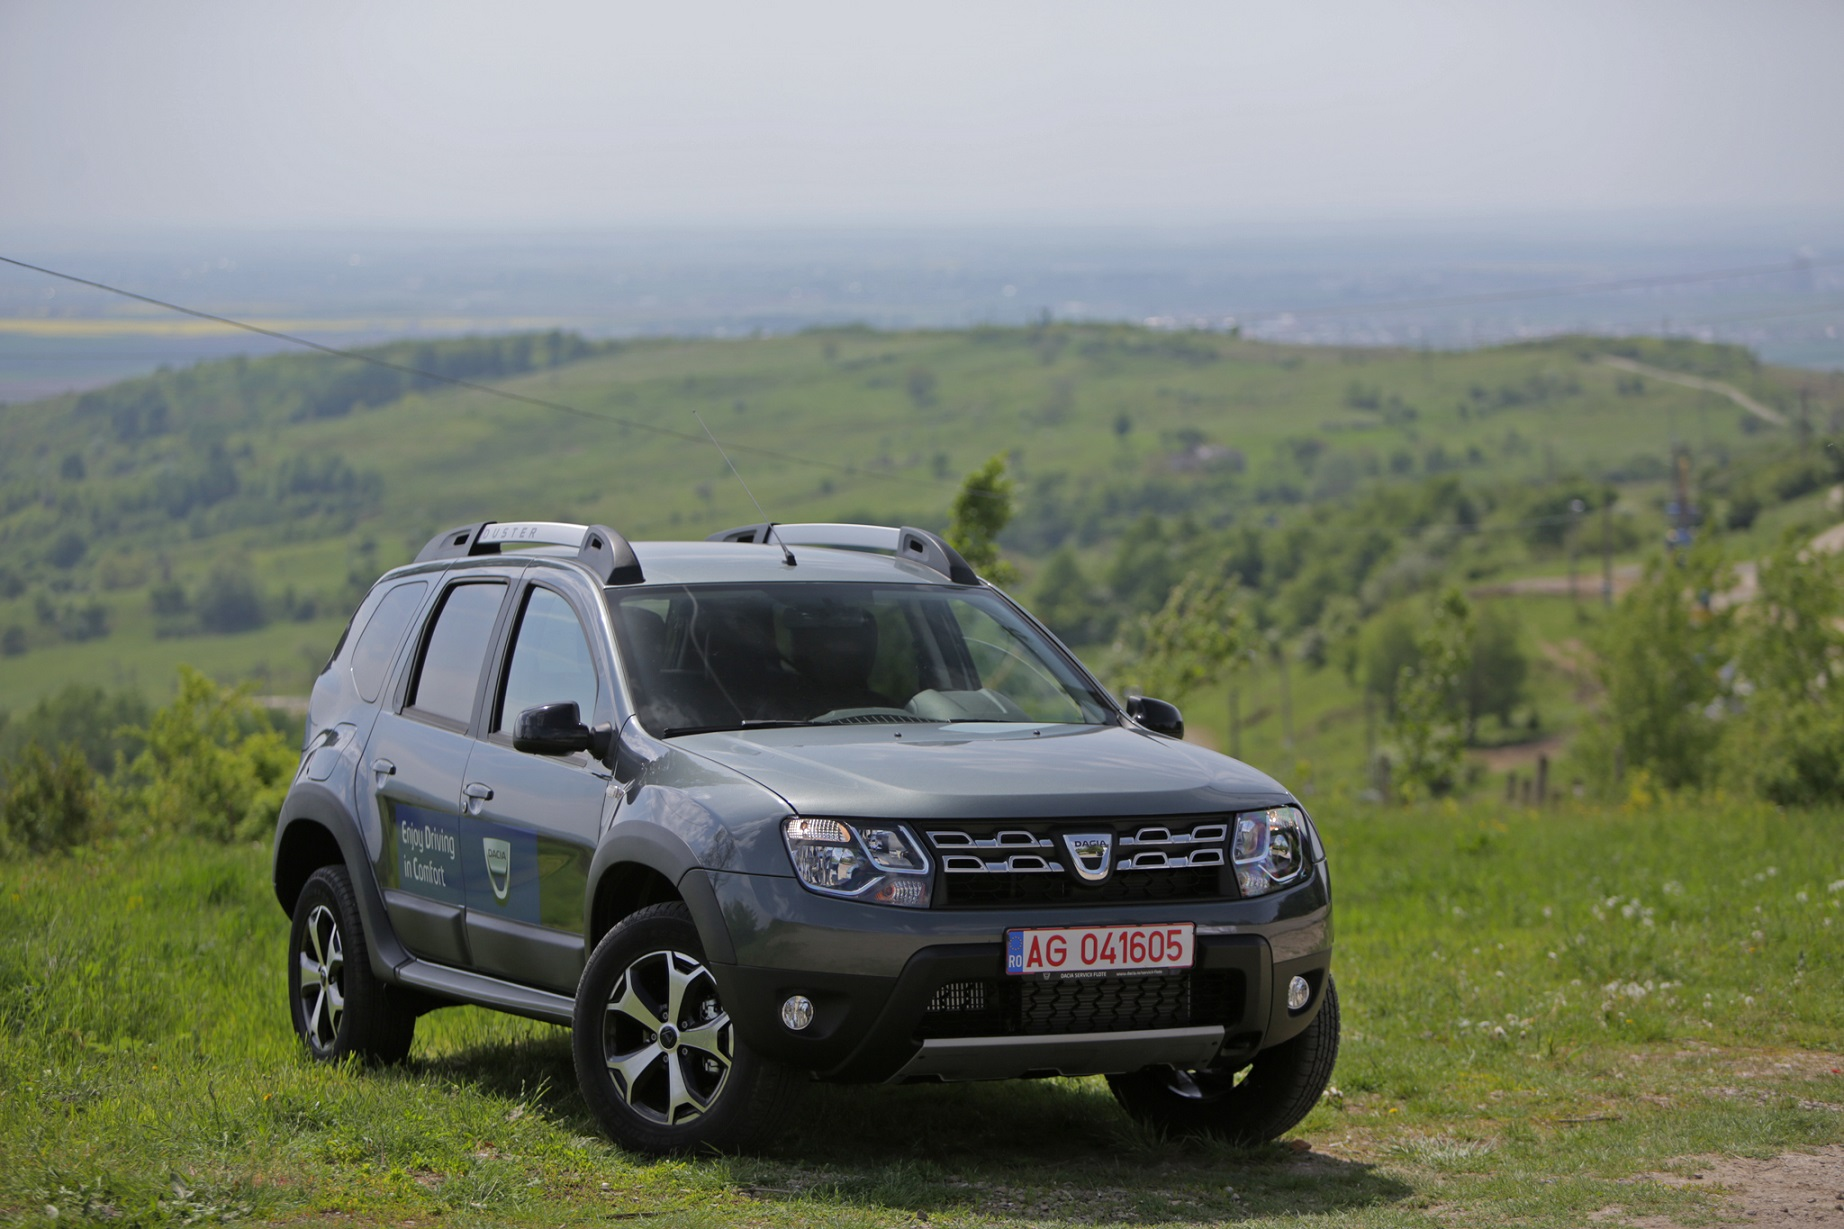 dacia launches duster edc and new explorer limited series business review. Black Bedroom Furniture Sets. Home Design Ideas